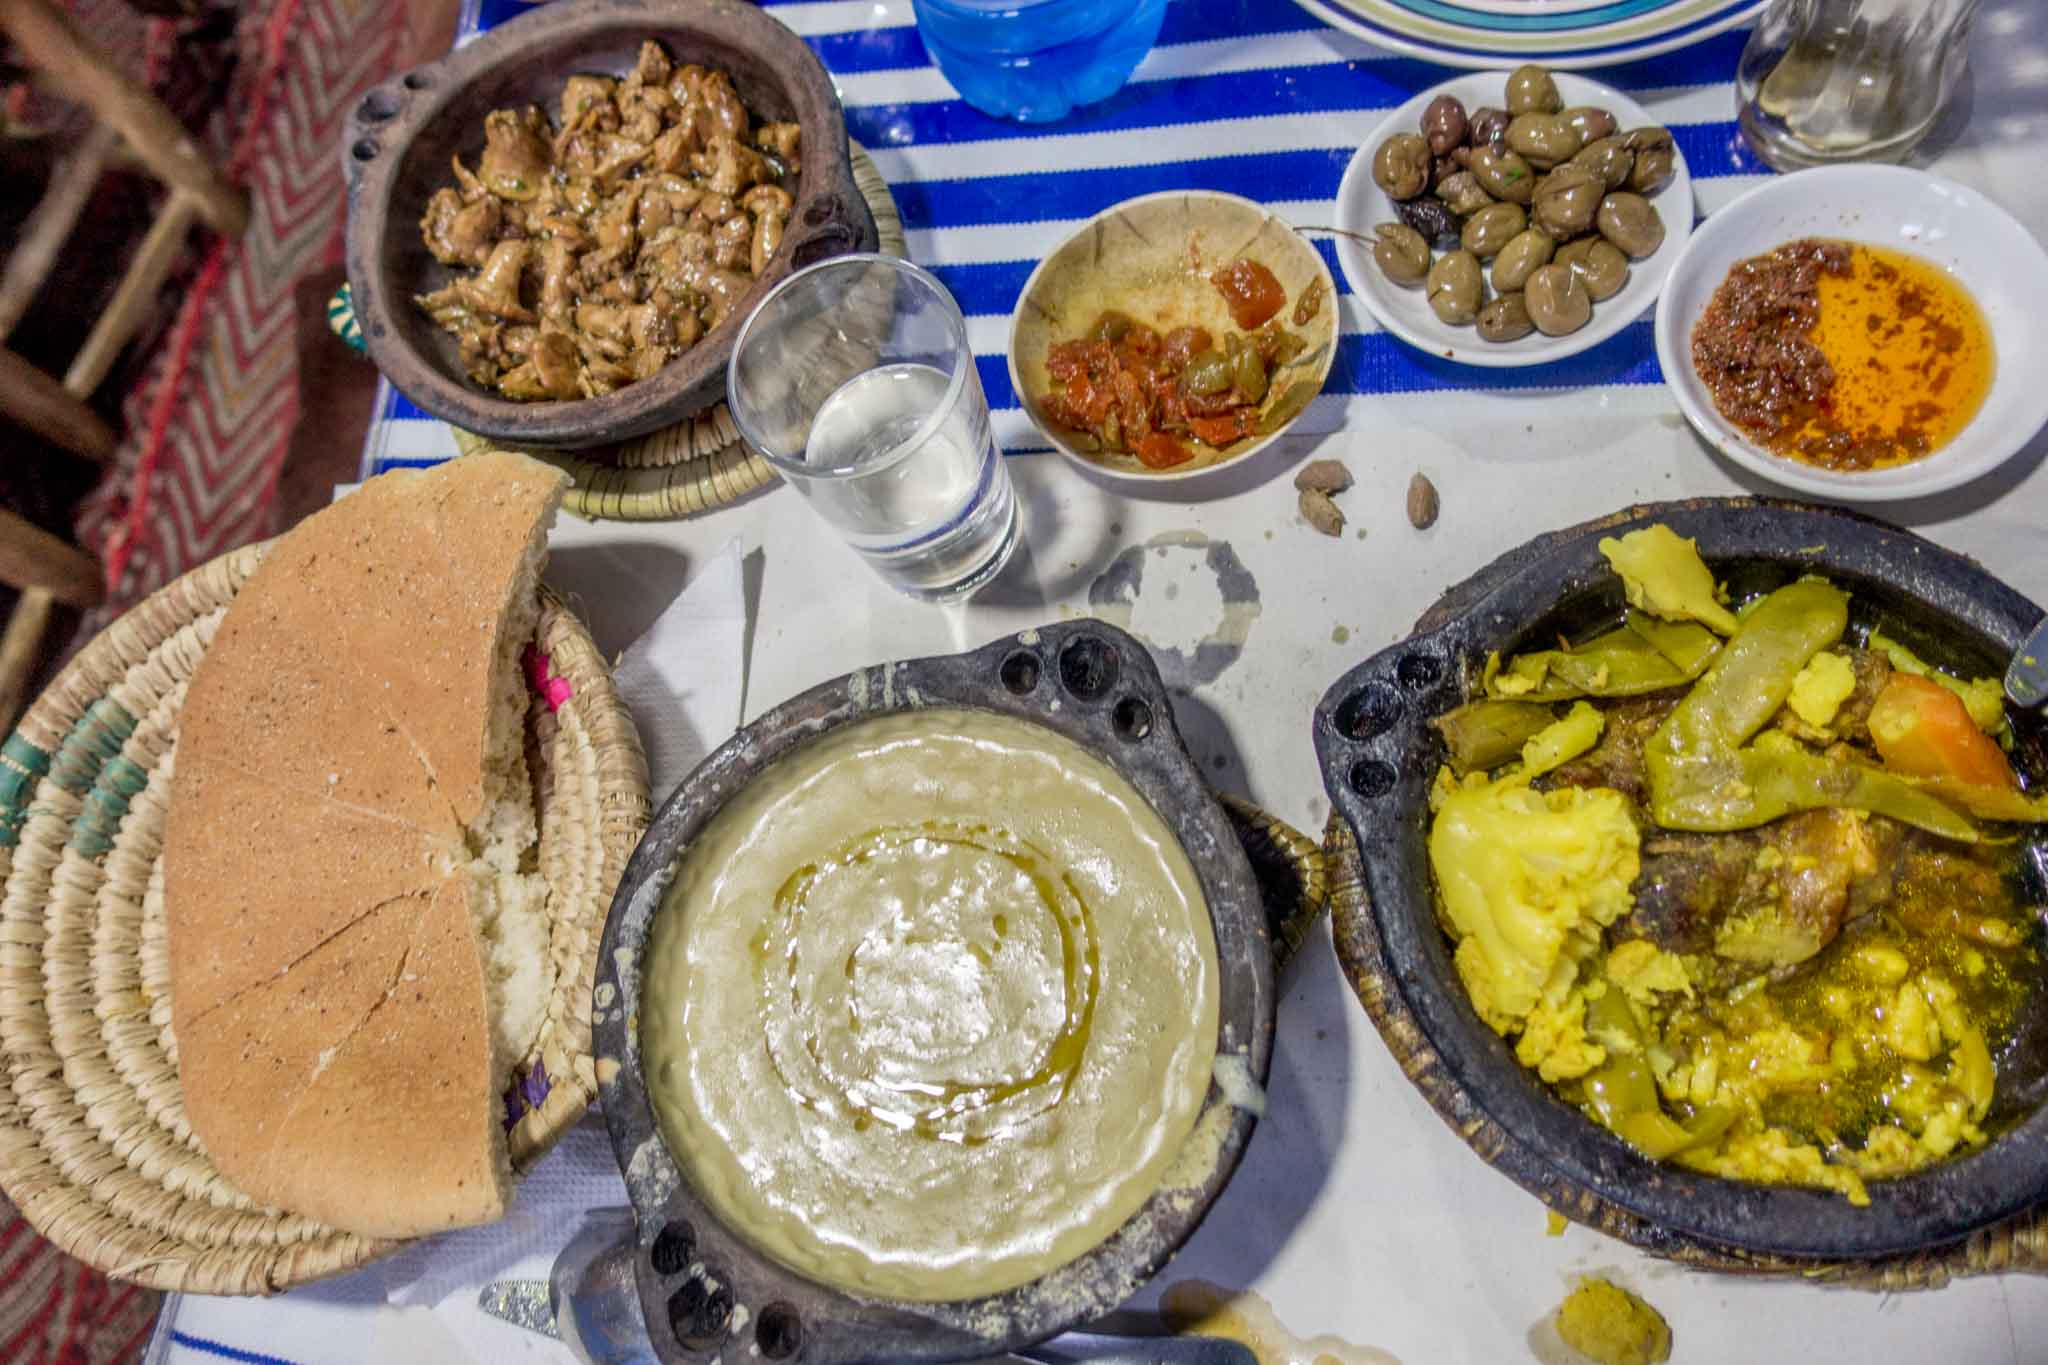 Traditional Moroccan food on table